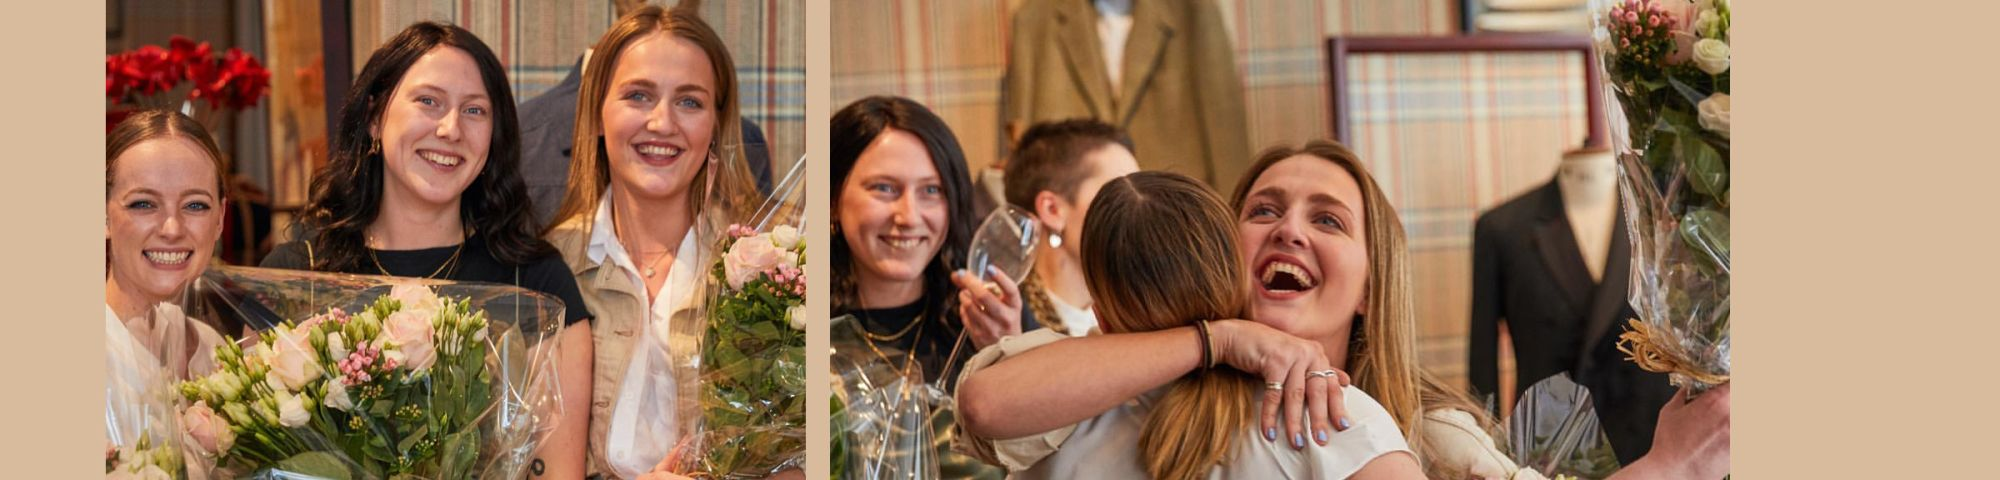 3 Female BA Bespoke Tailoring students with flowers after receiving award